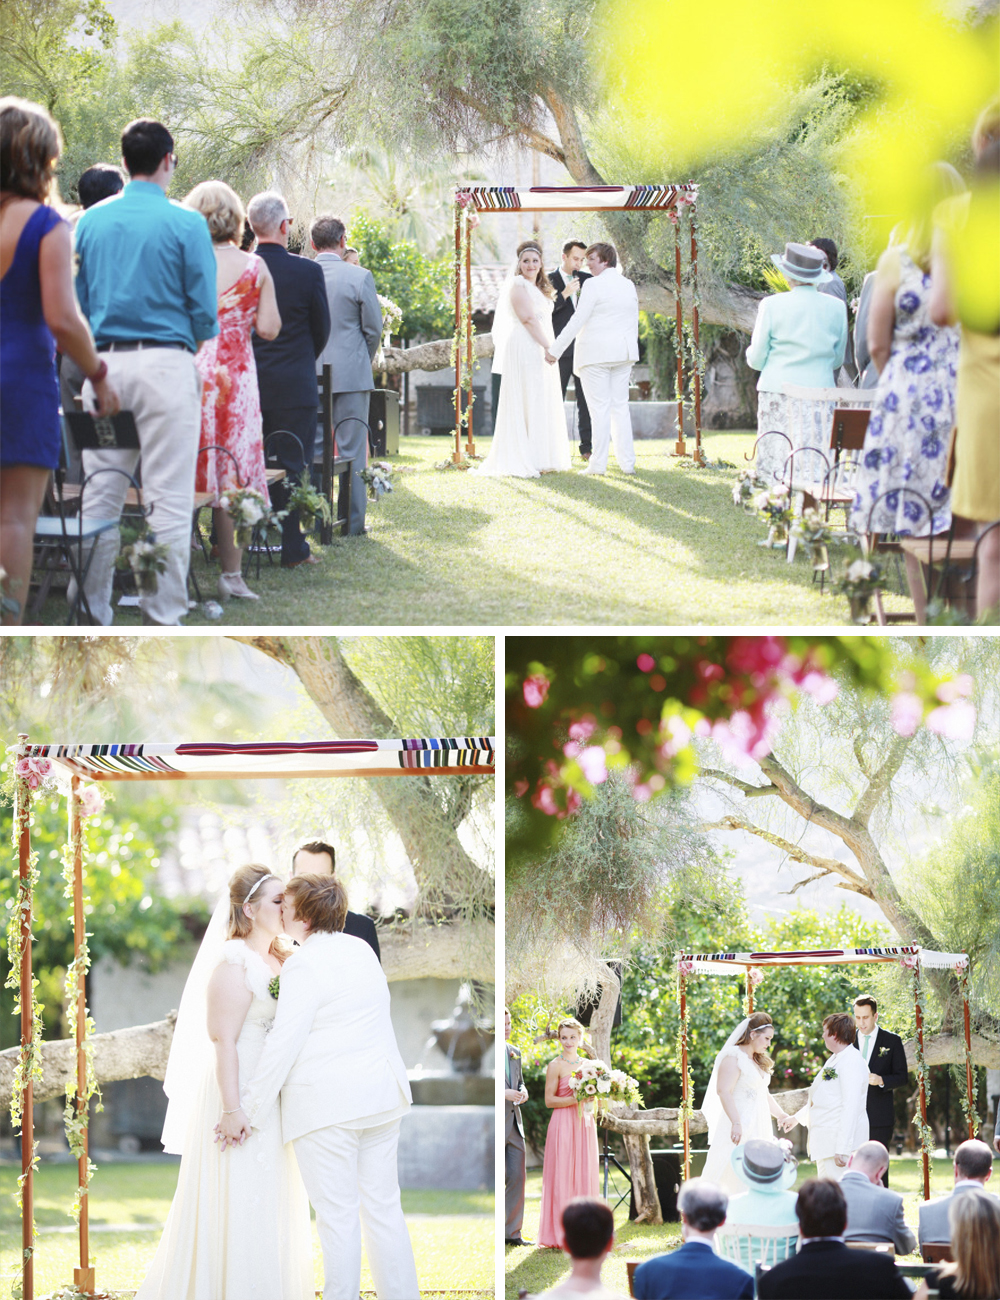 Music-themed Jewish wedding at Casa Cody Palm Springs California N